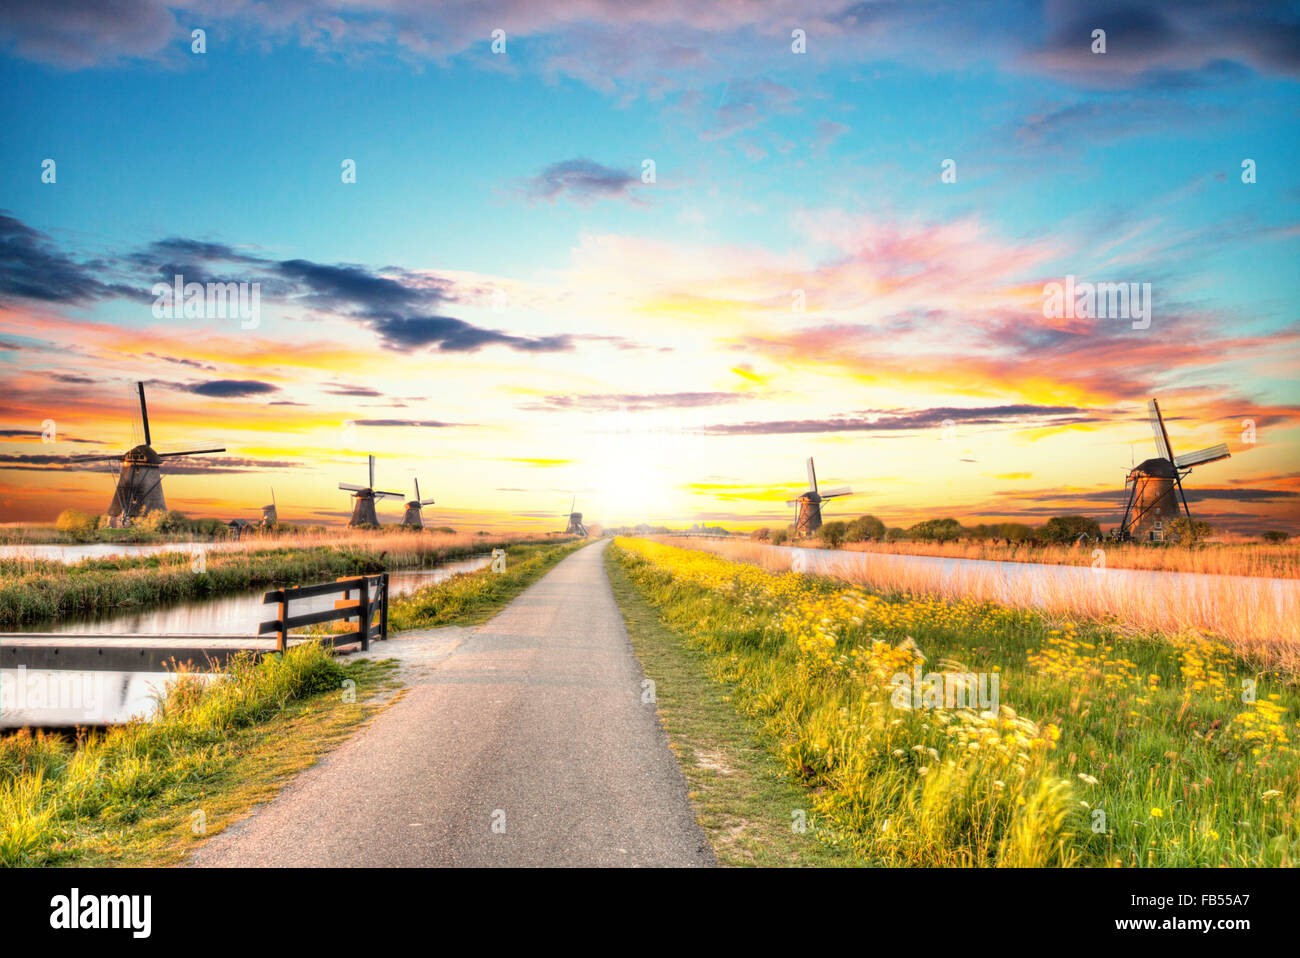 Windmills and water canal in Kinderdijk, Netherlands - Stock Image